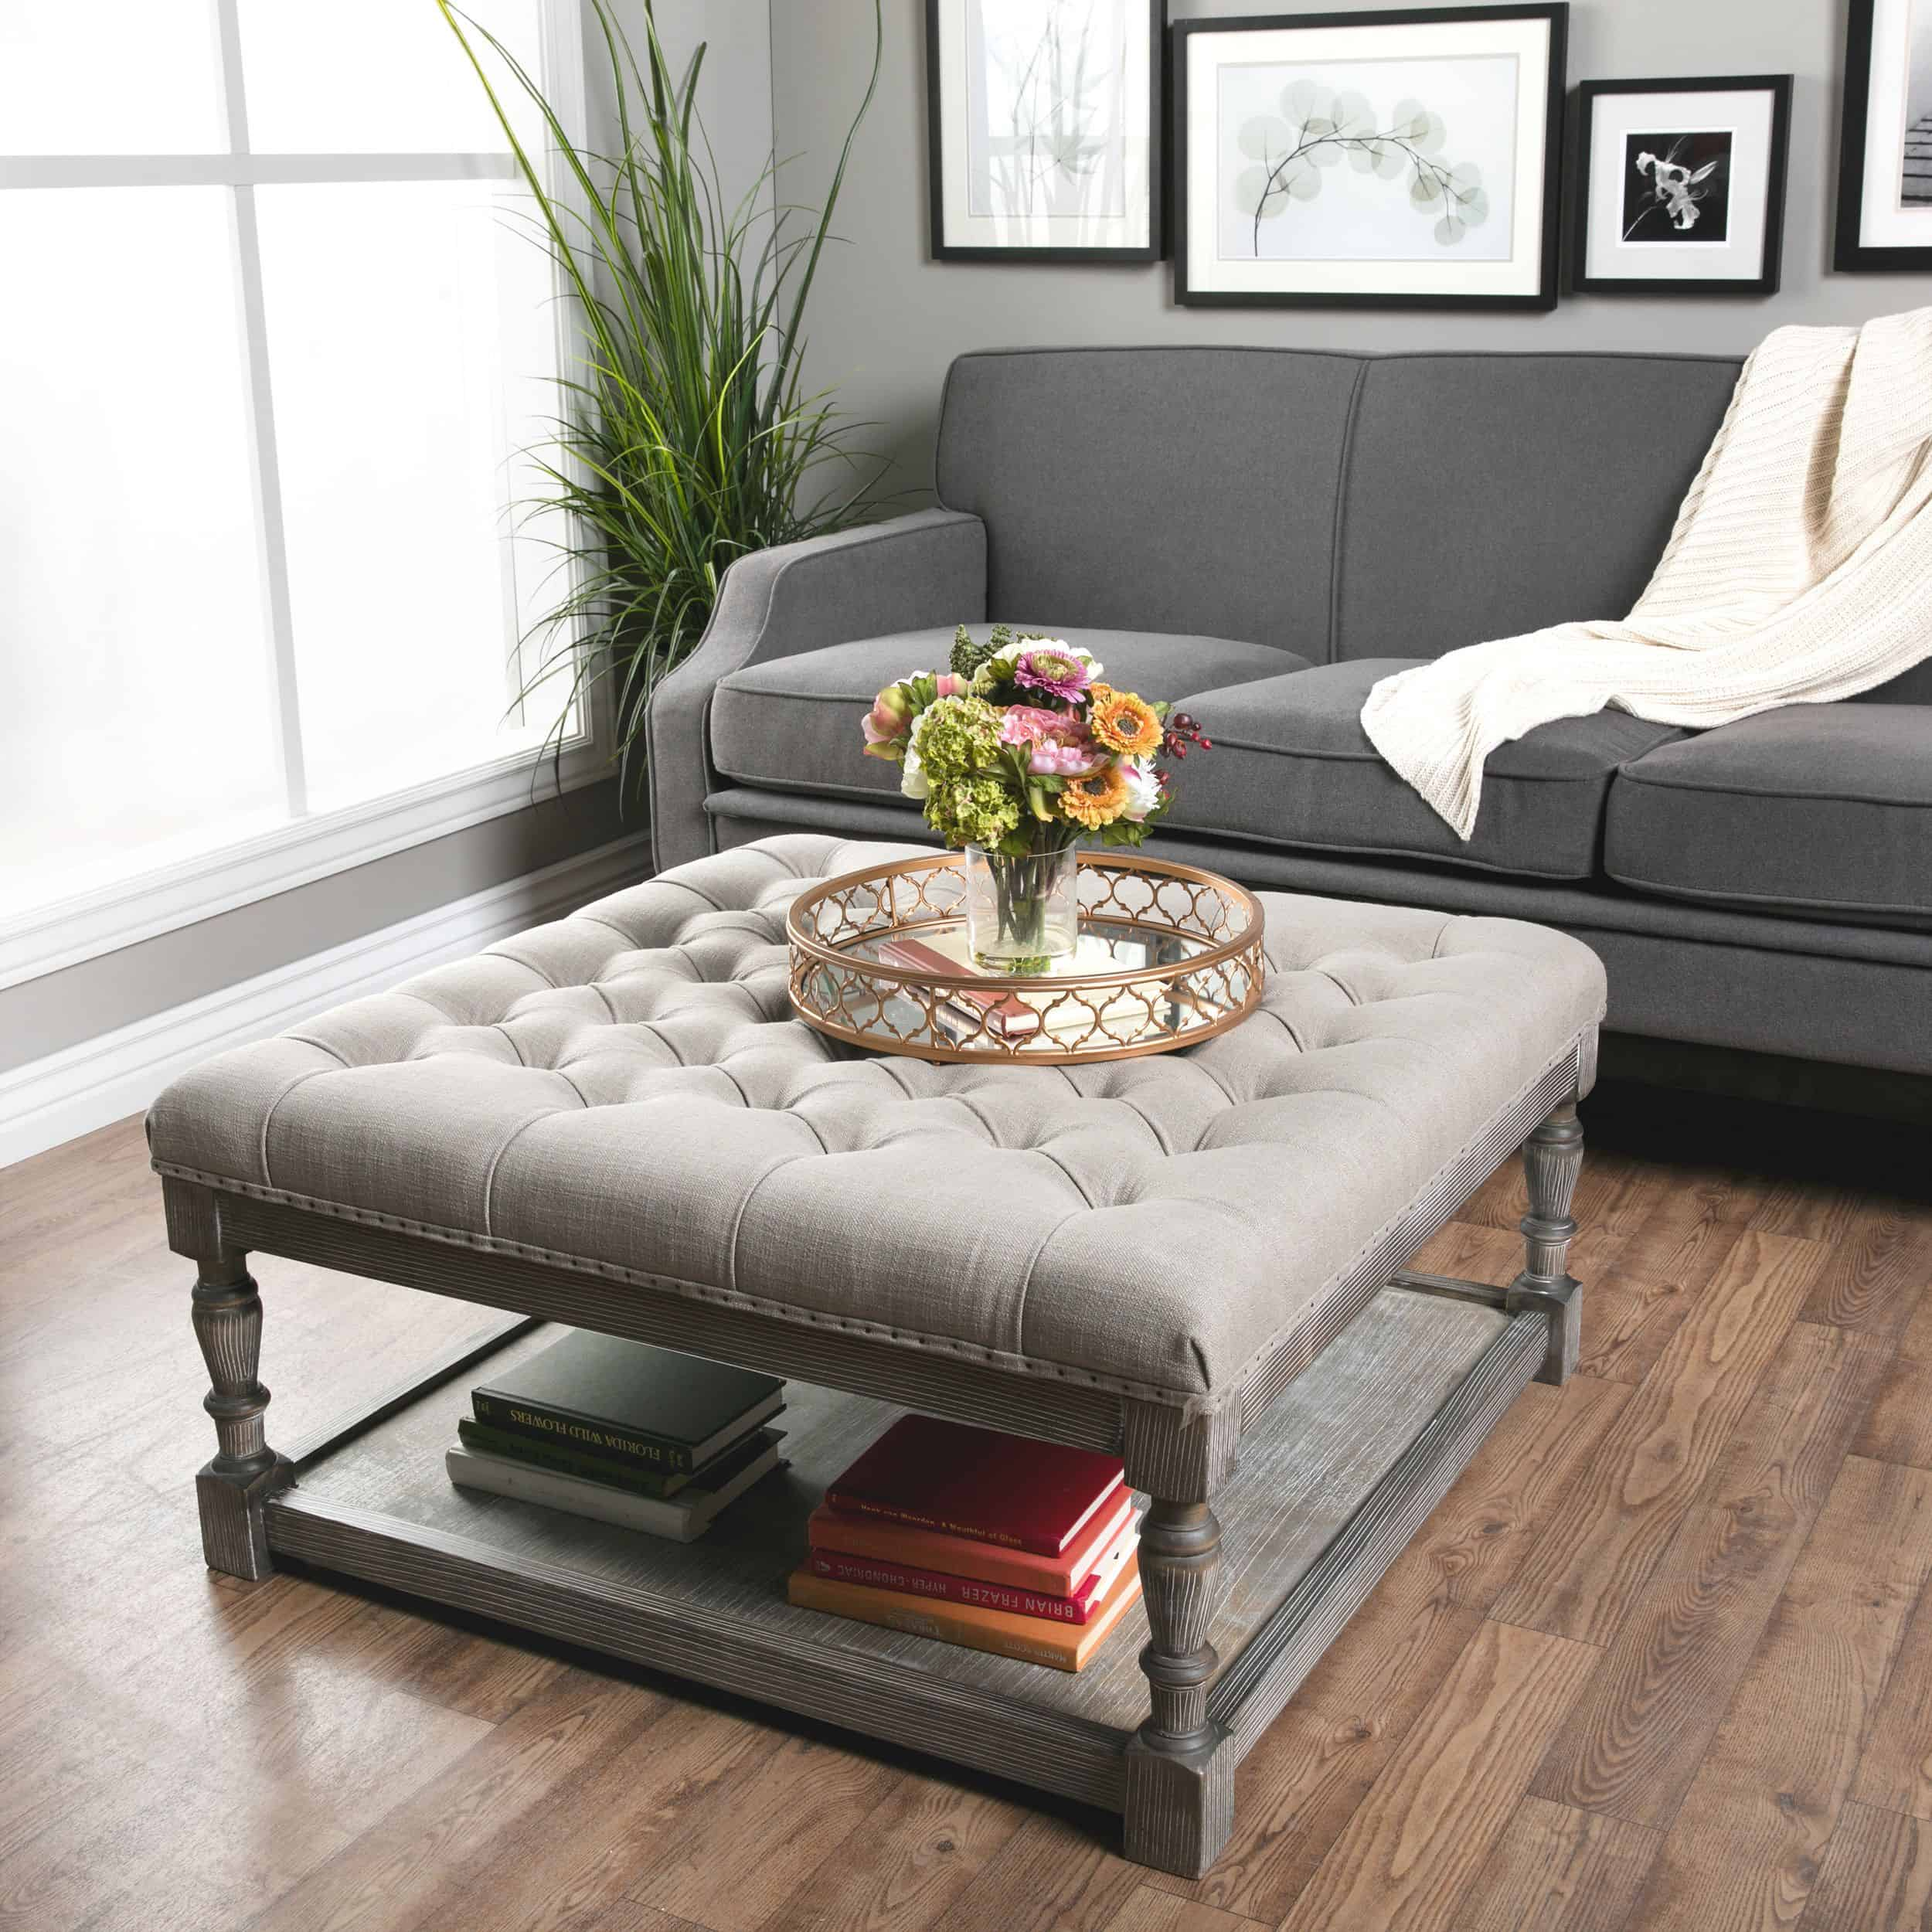 Ottoman Coffee Table With Sliding Wood Top: 12 Best Ways To Decorate A Coffee Table